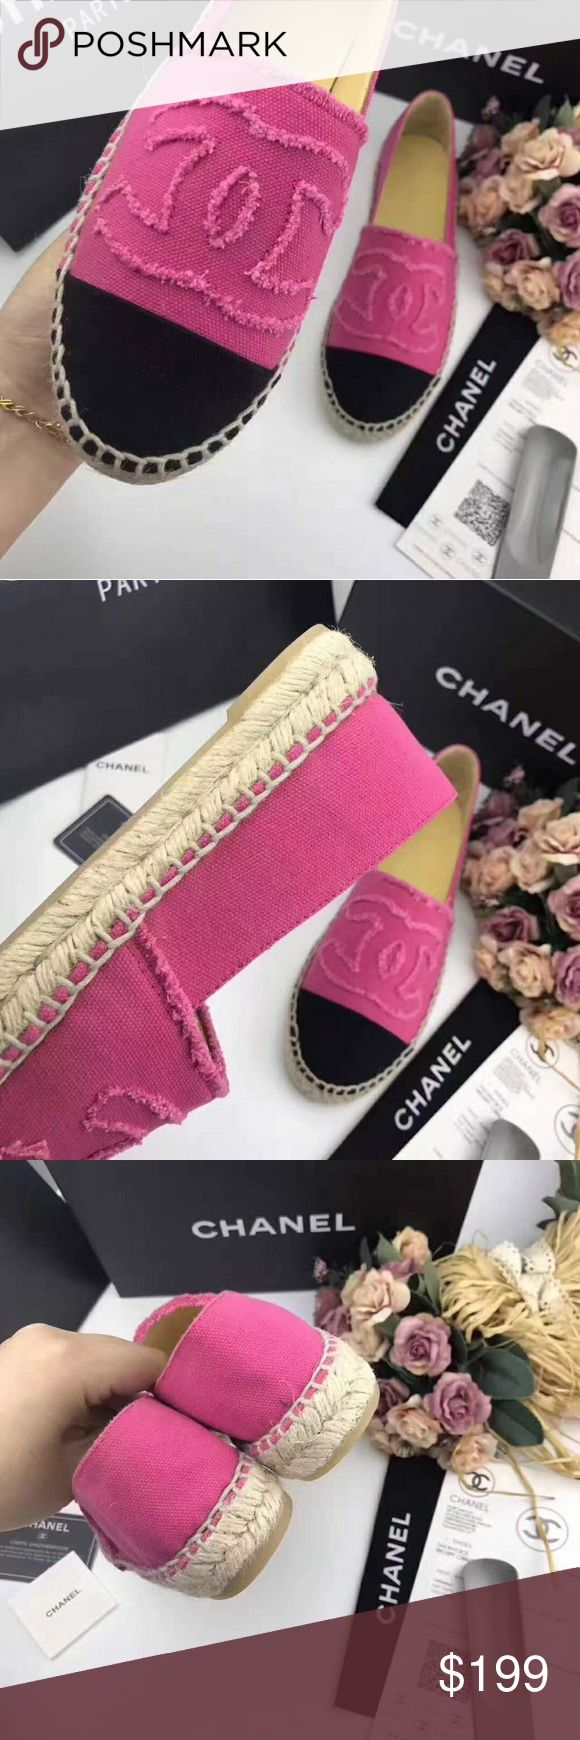 Chanel Espadrilles 2017  Pink Canvas Espadrilles. Price reflects auth. Sizing run small - order full size up. Delivery might take up to 2 weeks. No trades. No returns or exchanges.  size eu 36 =22.5-23 cm size eu 37 =23-23.5 cm size eu 38 =23.5-24 cm size eu 39 =24-24.5 cm size eu 40 =24.5-25 cm size eu 41 =25-25.5 cm size eu 42 =25.5-26 cm Shoes Espadrilles